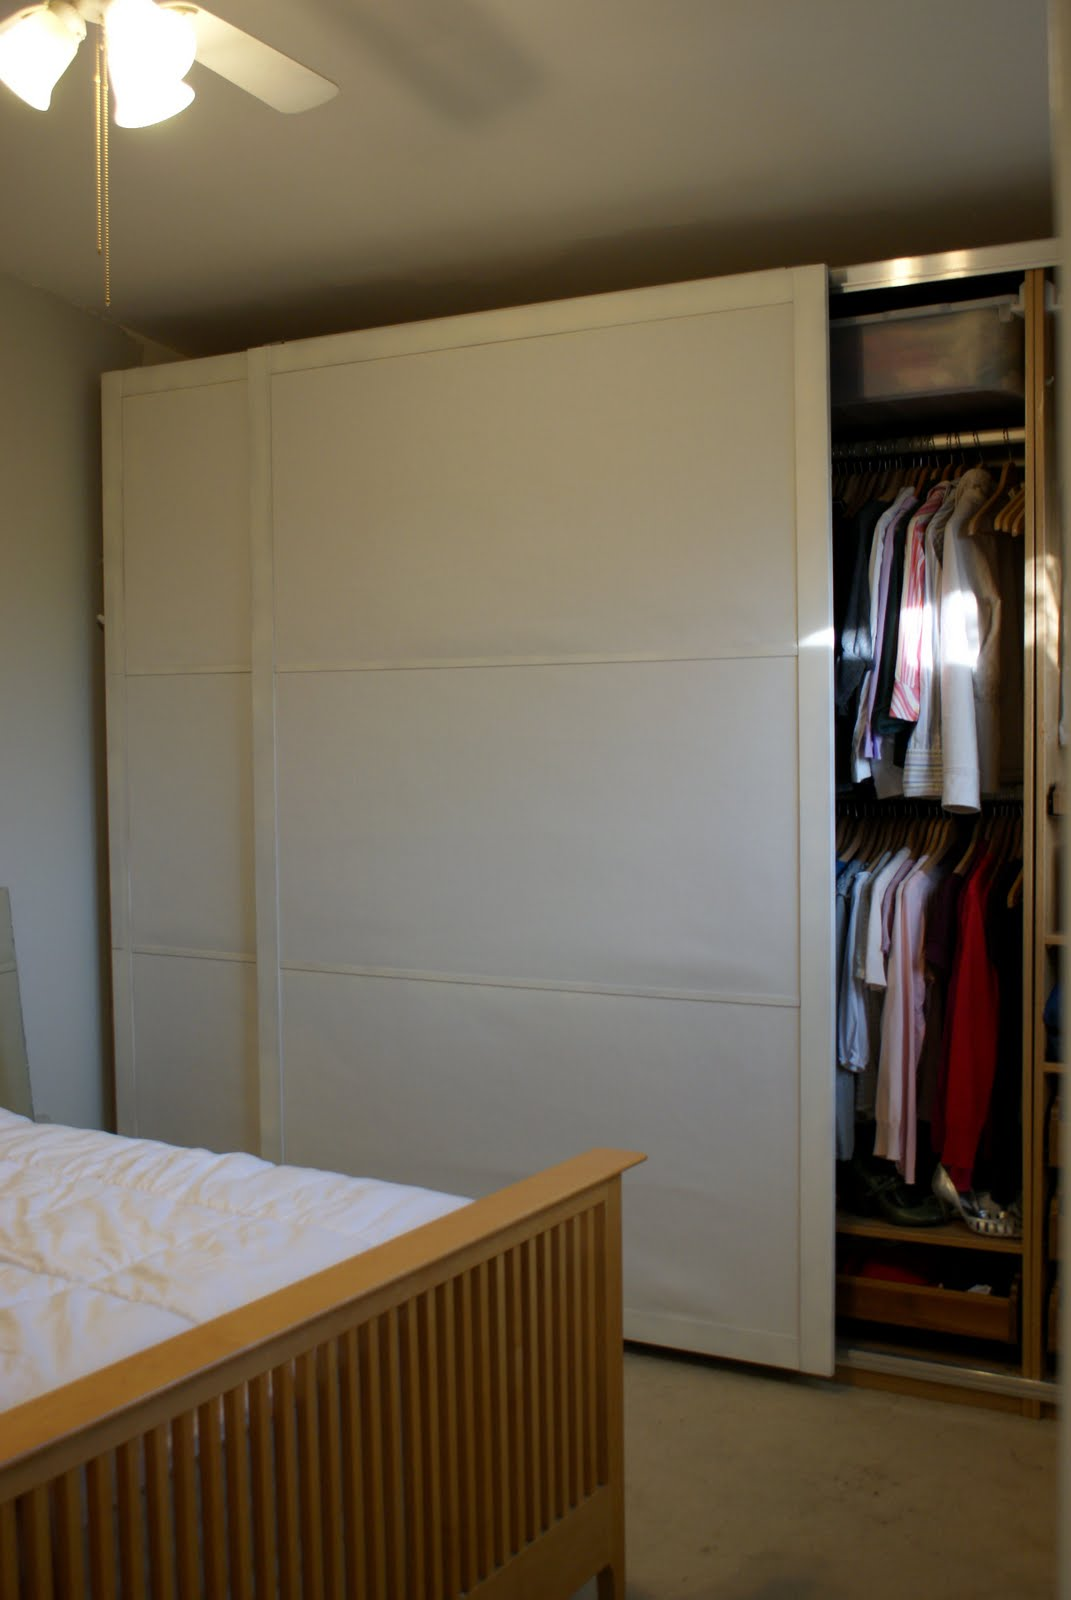 Sliding doors ikea all about home ideas best sliding doors ideas - Fixing The Pax Sliding Door